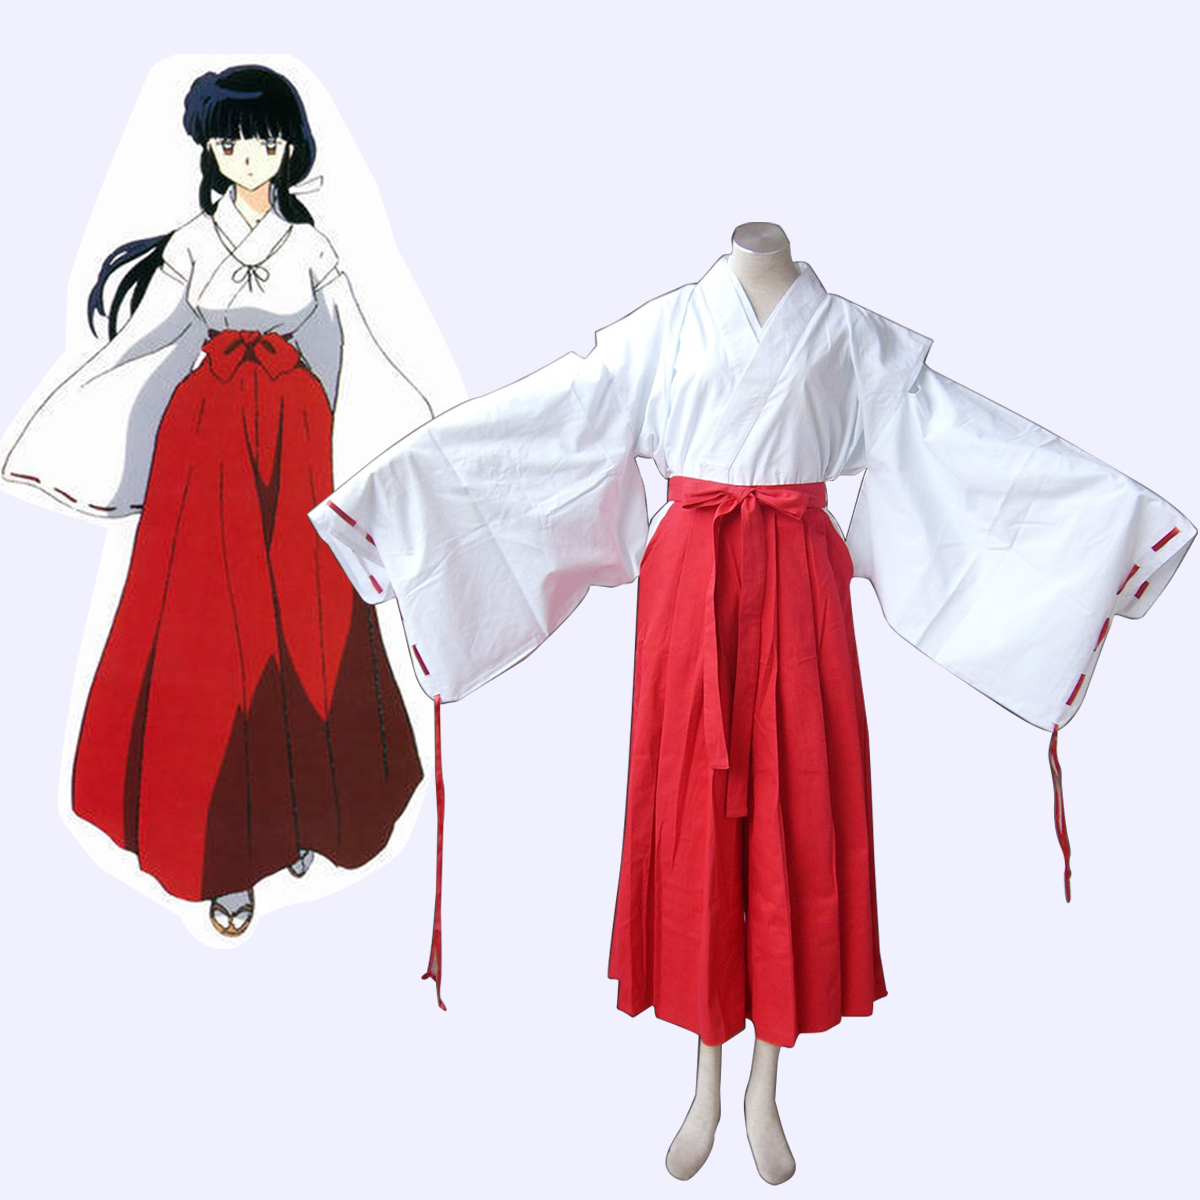 Inuyasha Kikyou Miko Anime Cosplay Costumes Outfit